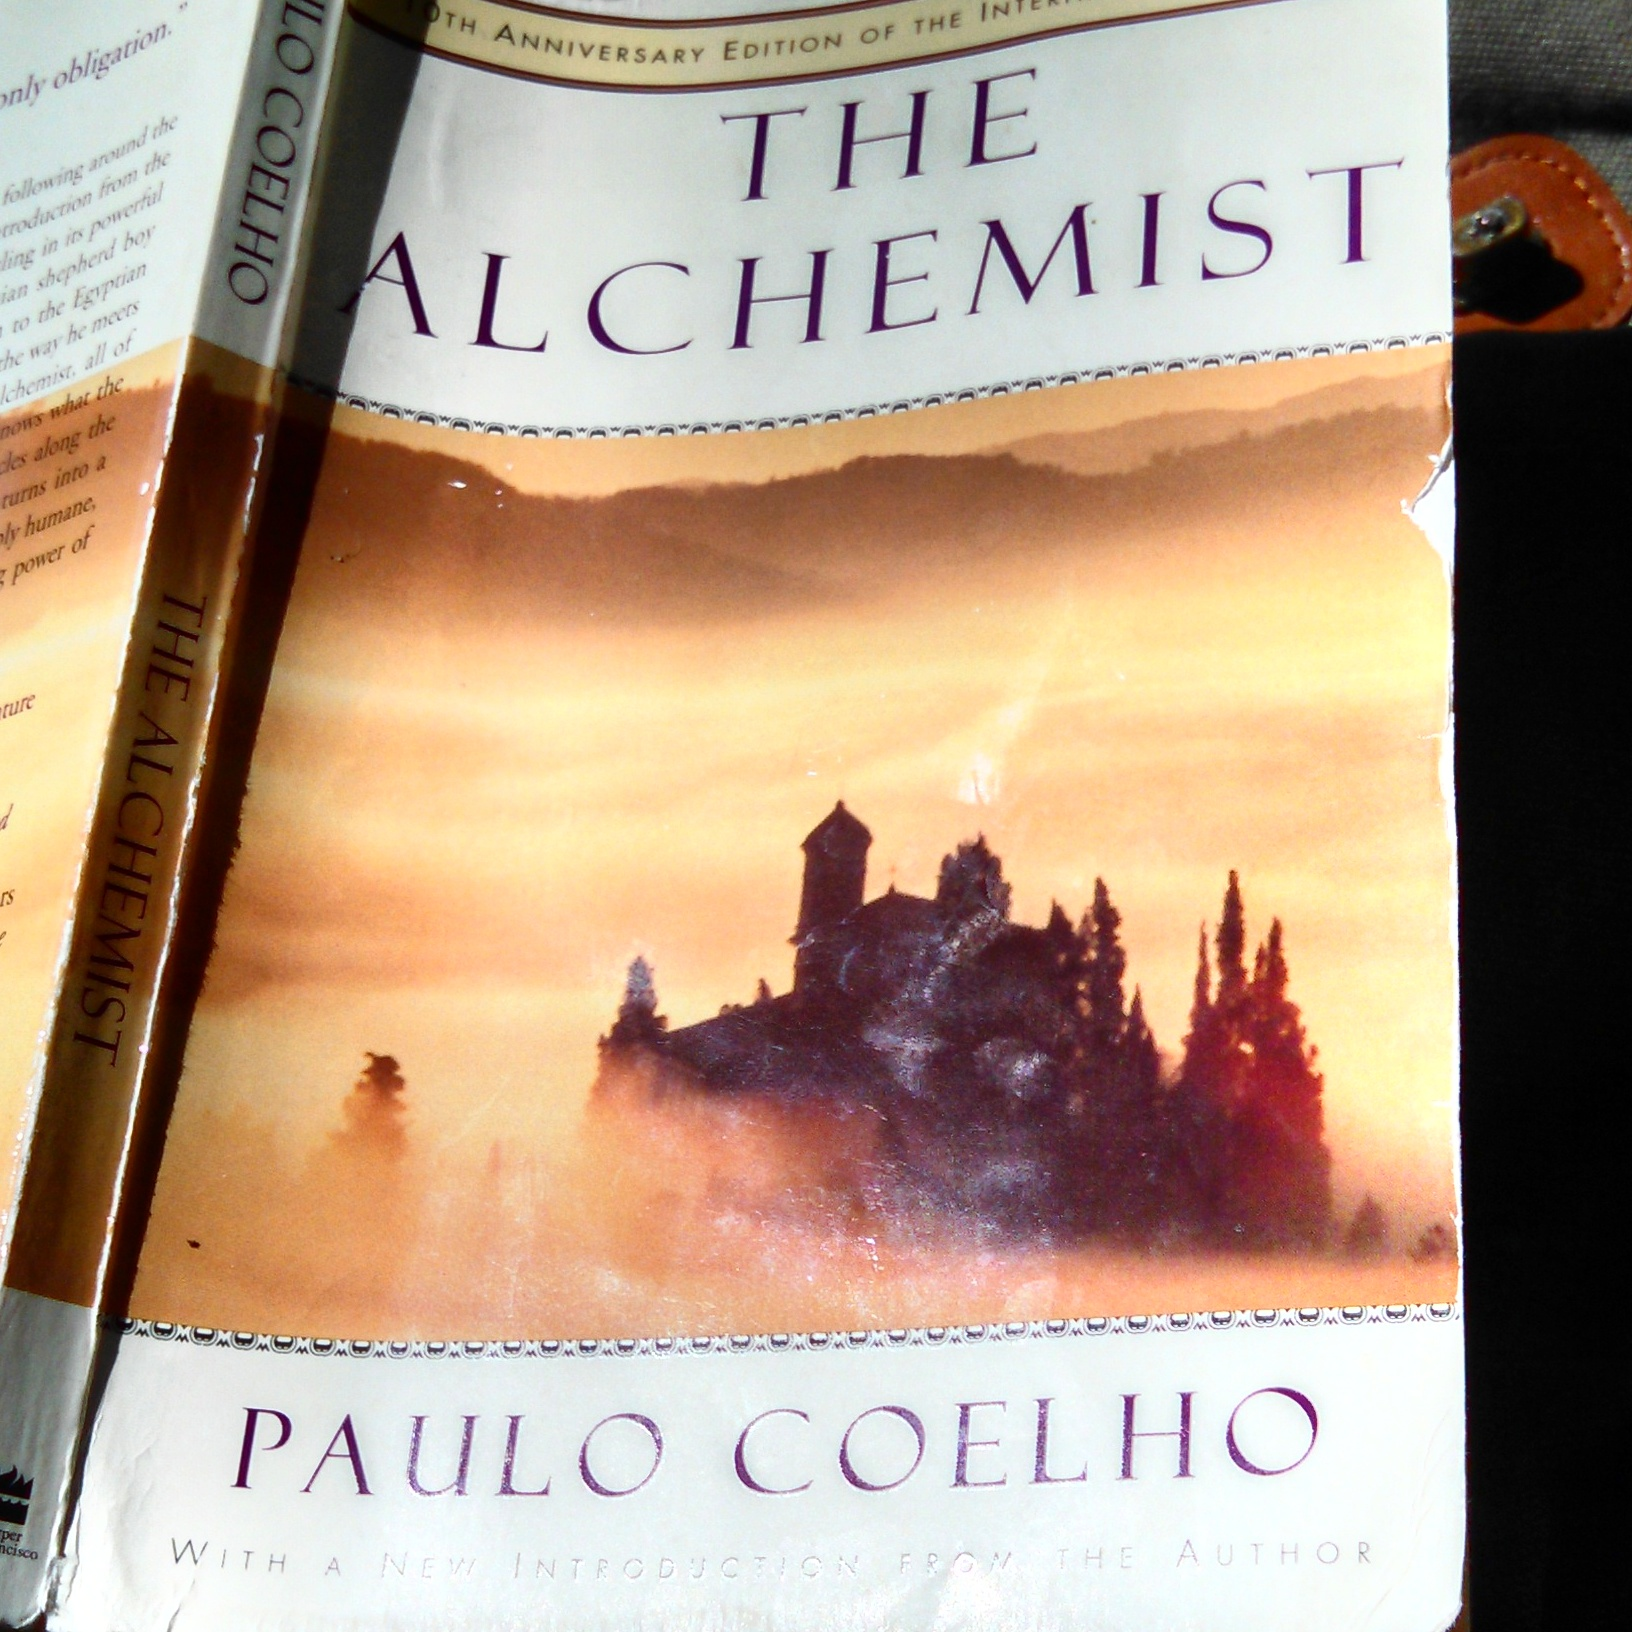 alchemist essay essay on welfare reform women riding bitch  women riding bitch my tattered copy of the alchemist by paulo coelho alchemist essay pixels